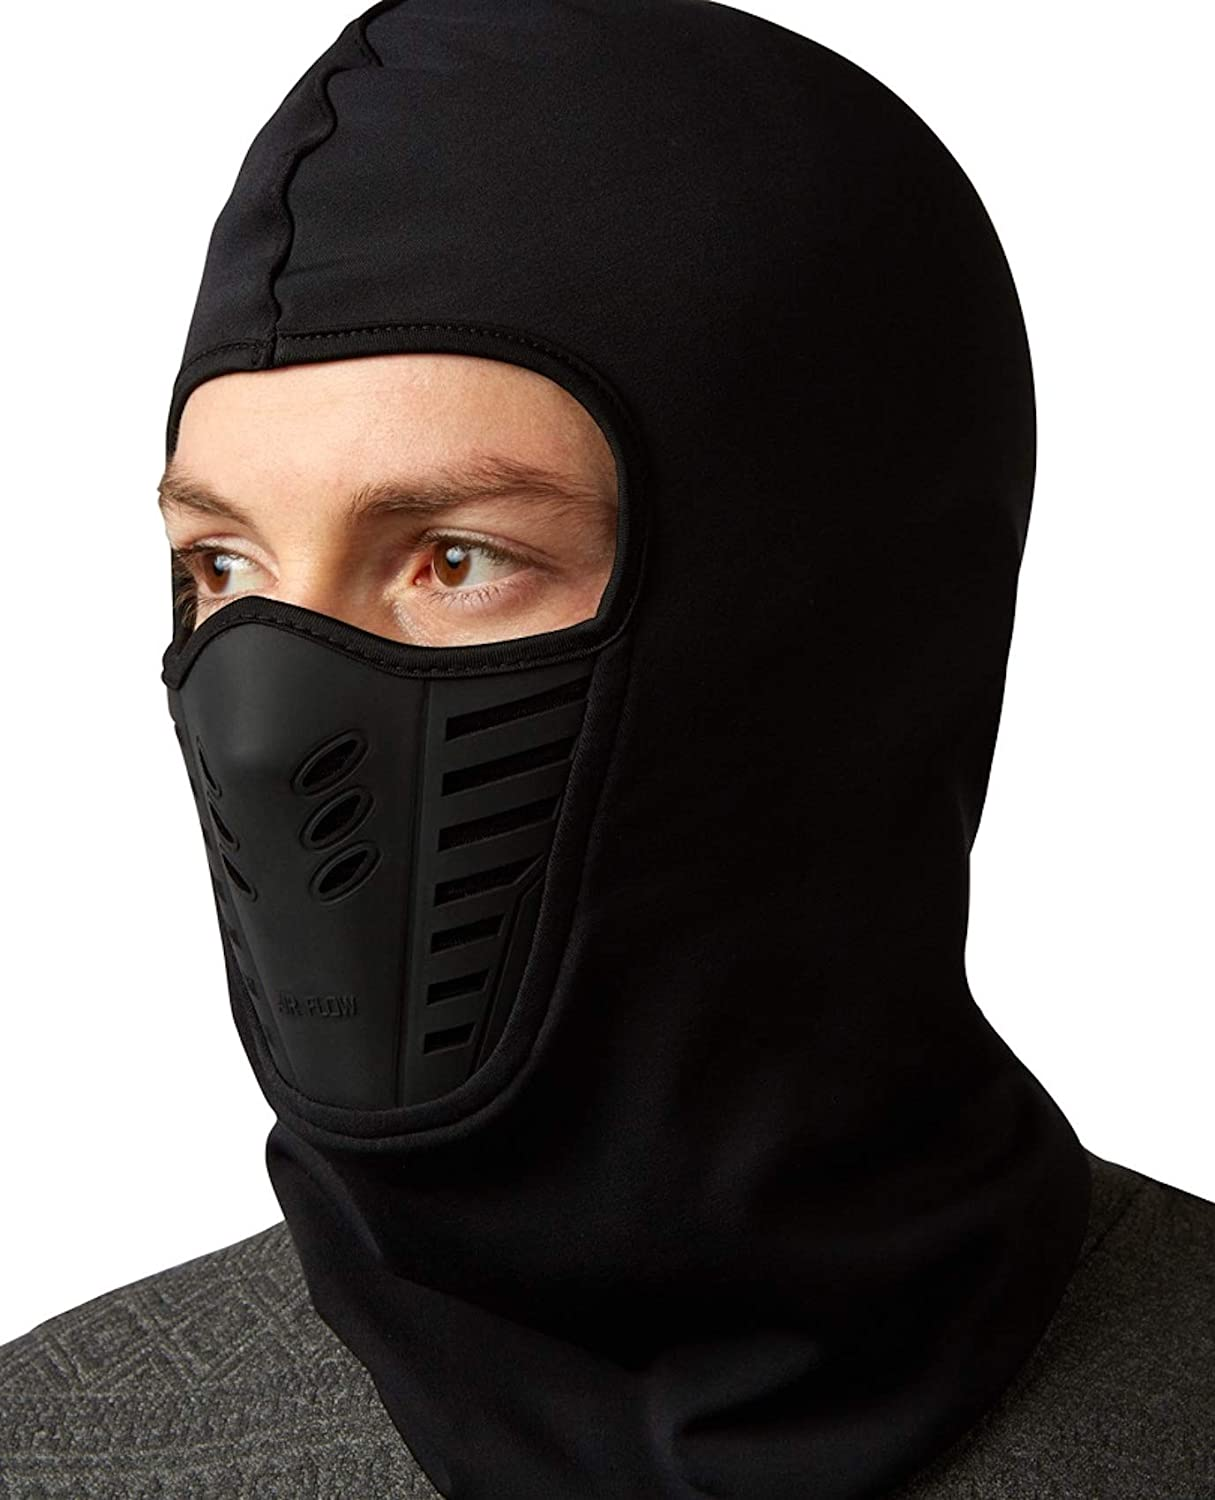 Self Pro Balaclava - Windproof Ski Mask - Cold Weather Face Motorcycle Mask - Ultimate Thermal Retention & Moisture Wicking w/Performance Soft Fleece Construction…